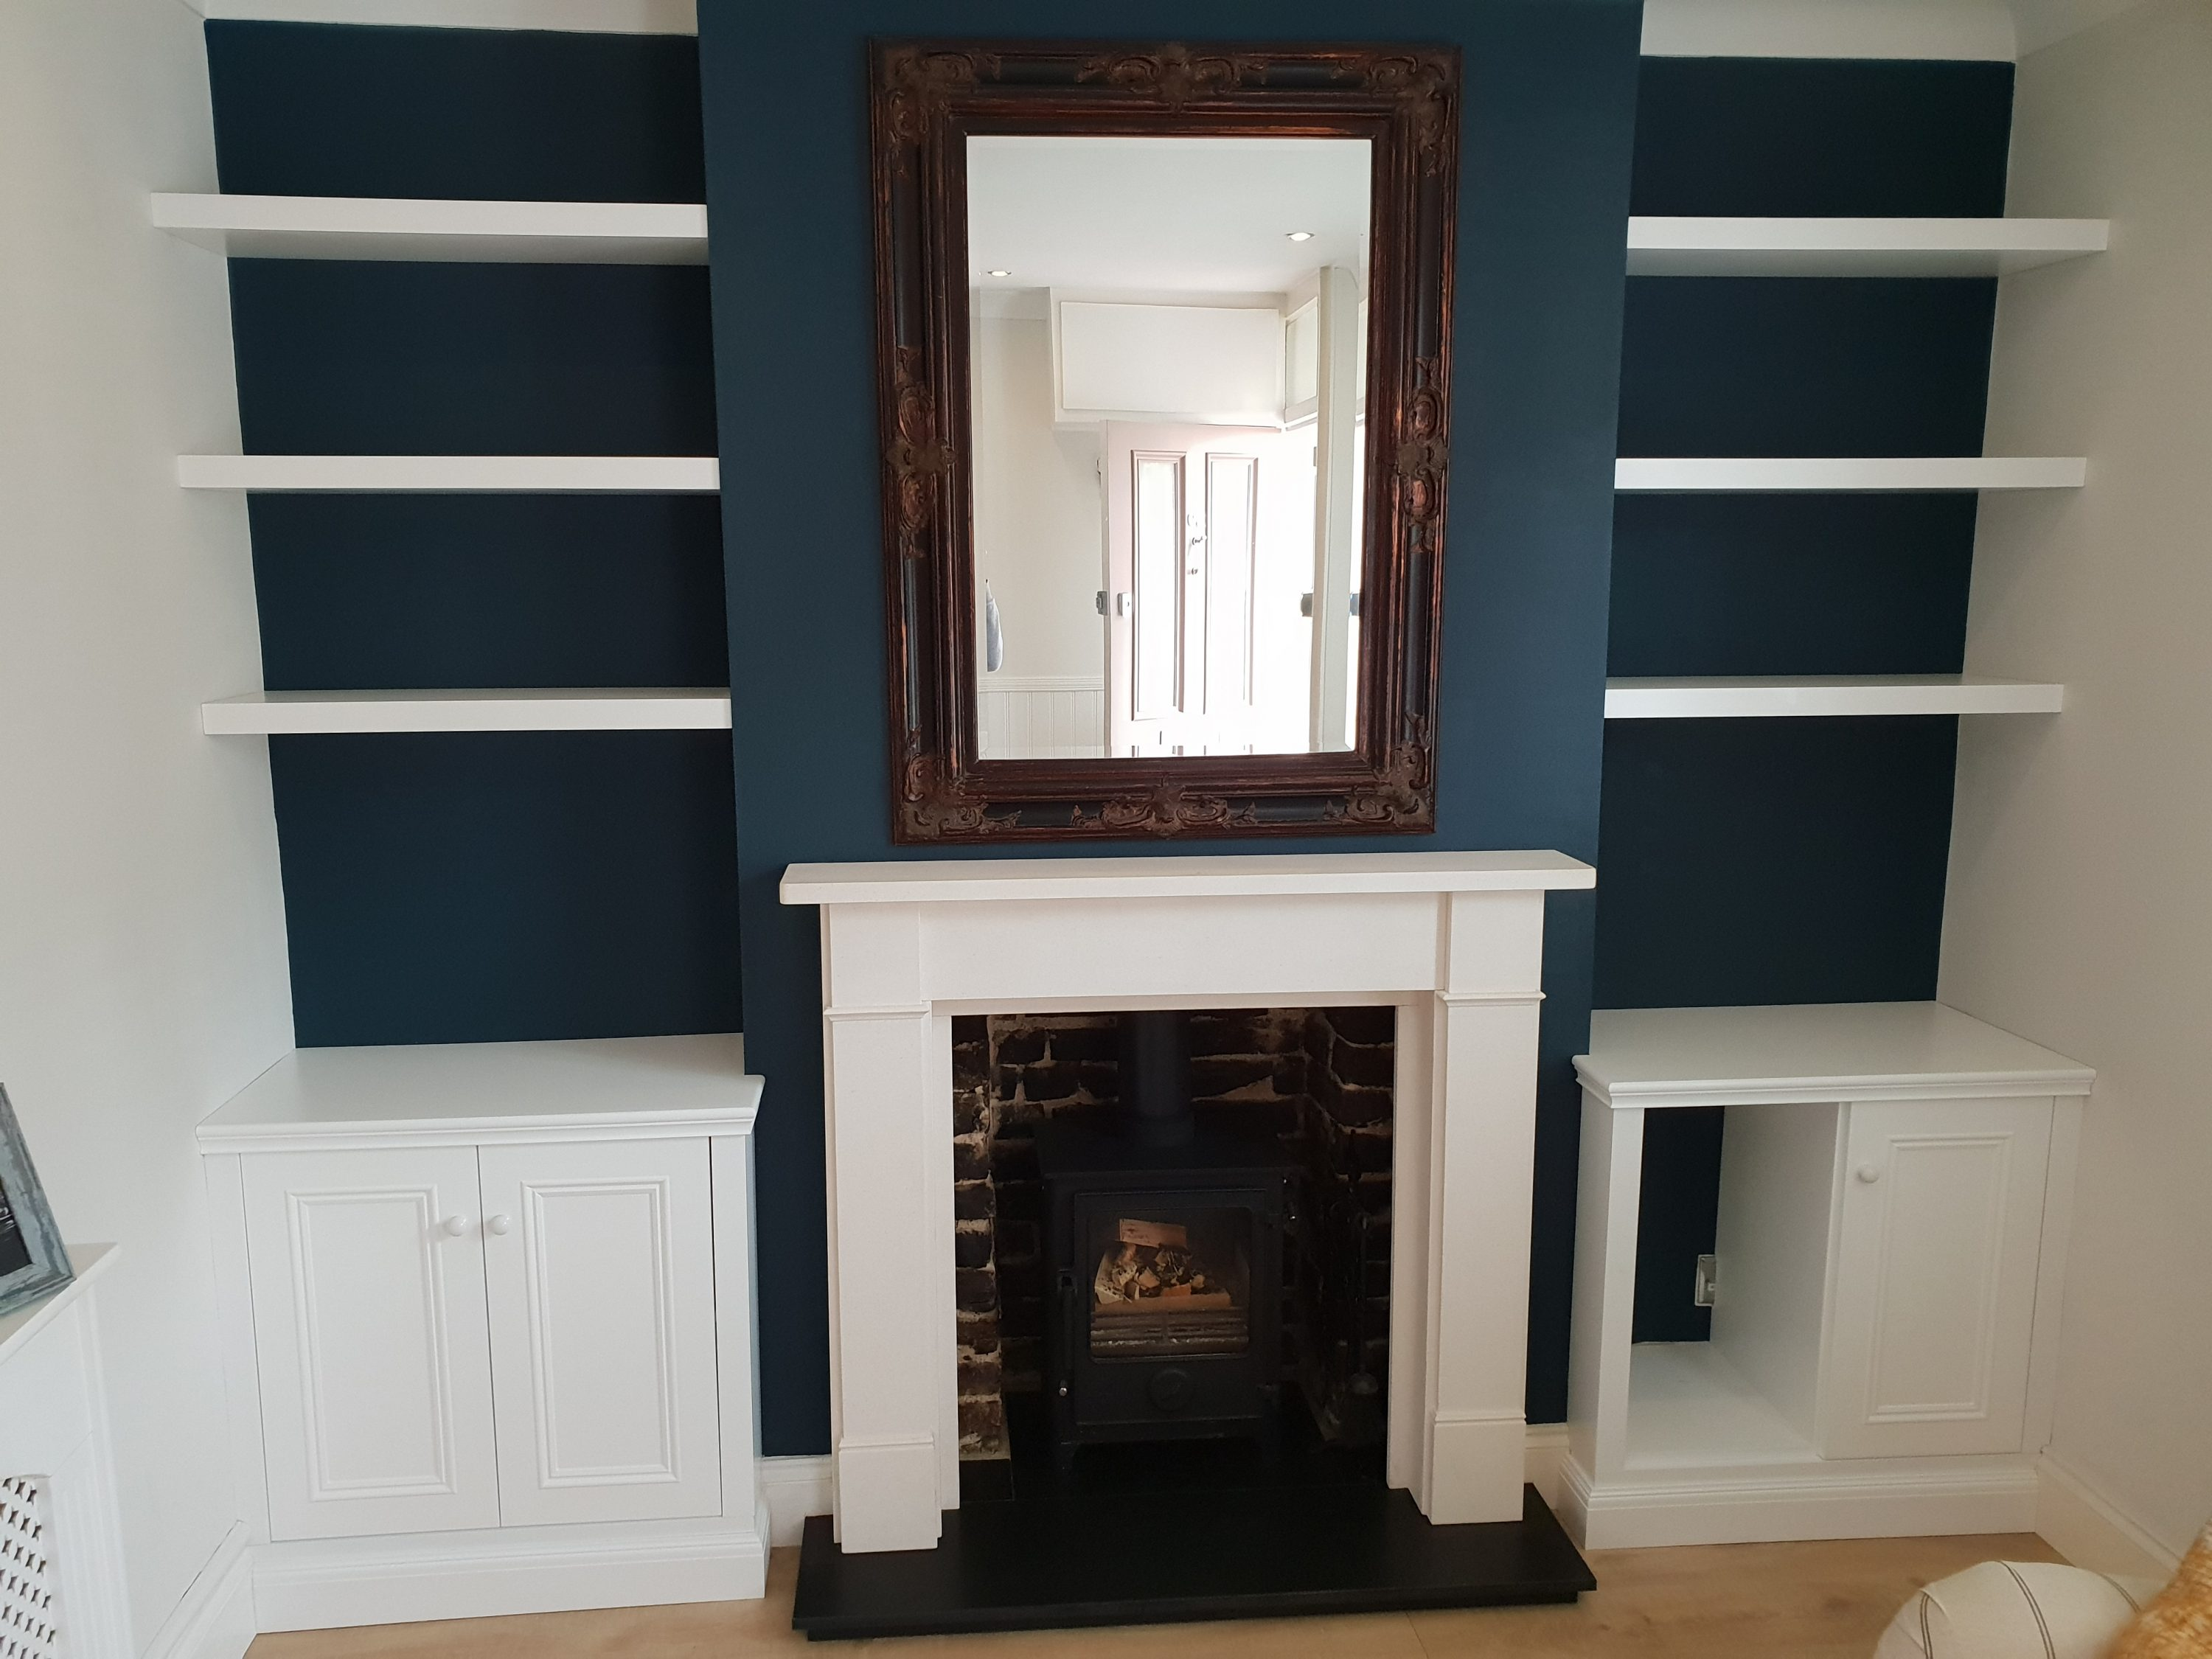 Alcove Shelving With Floor Cupboards Bespoke Kitchens